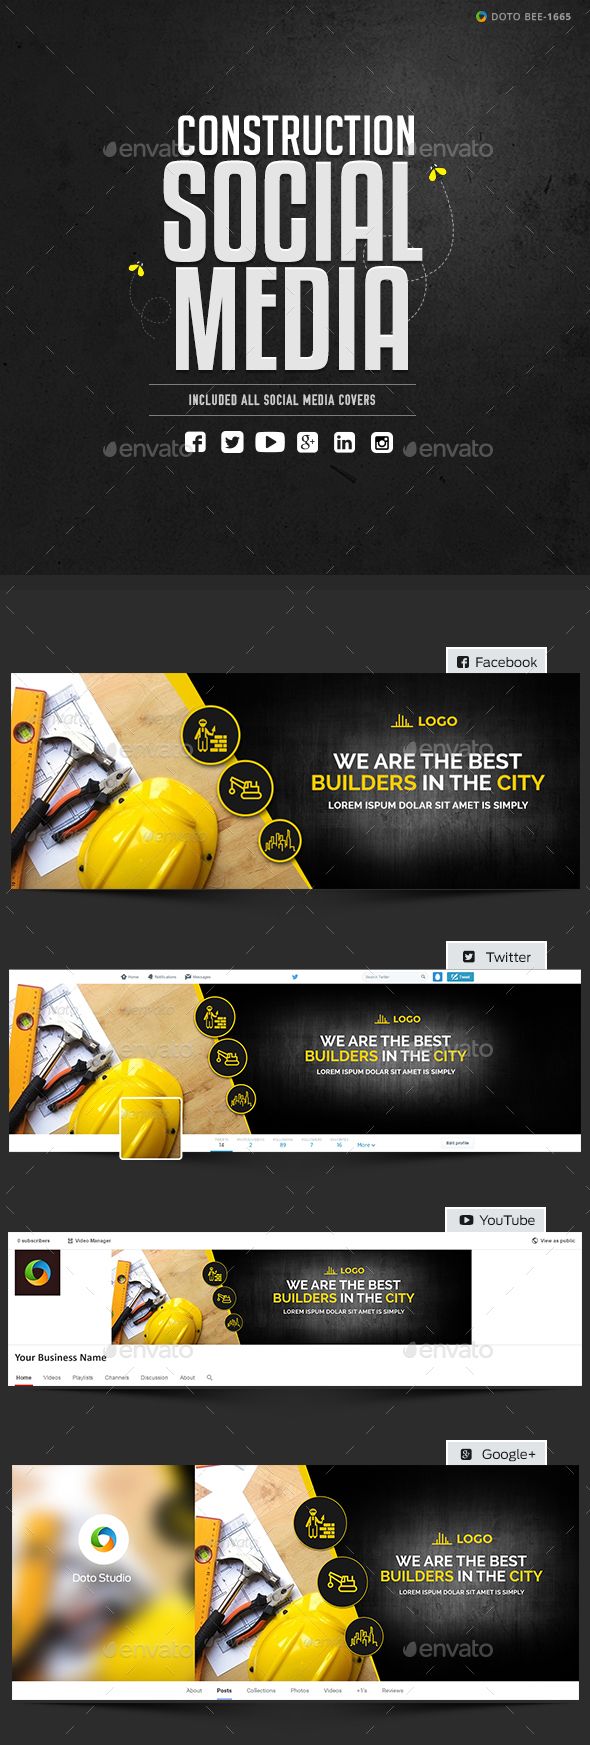 construction-social-media-covers-package-templates